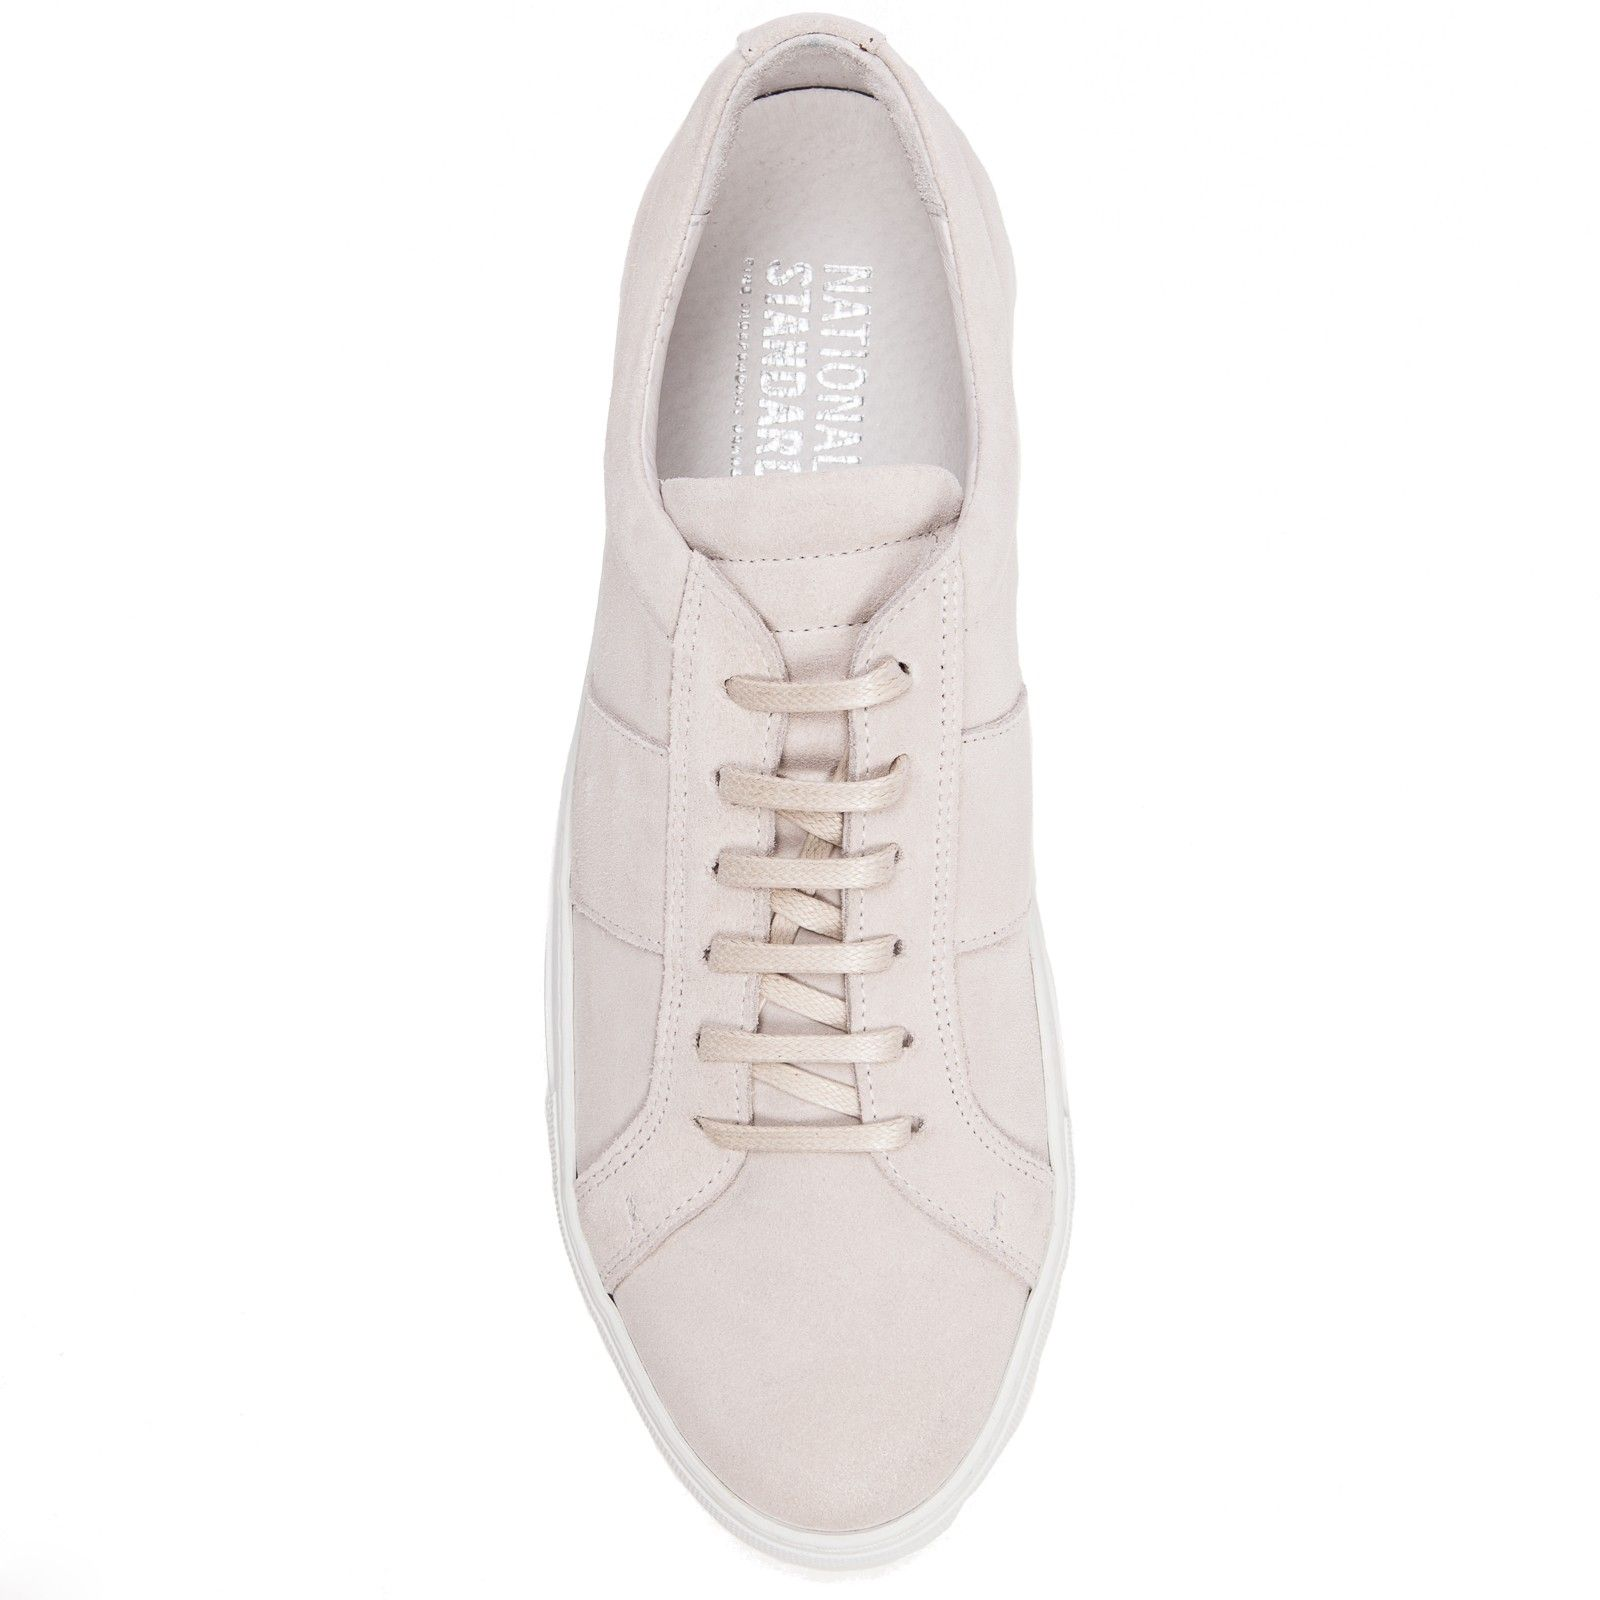 Edition 4 Suede Sneakers - Sale - online menswear store